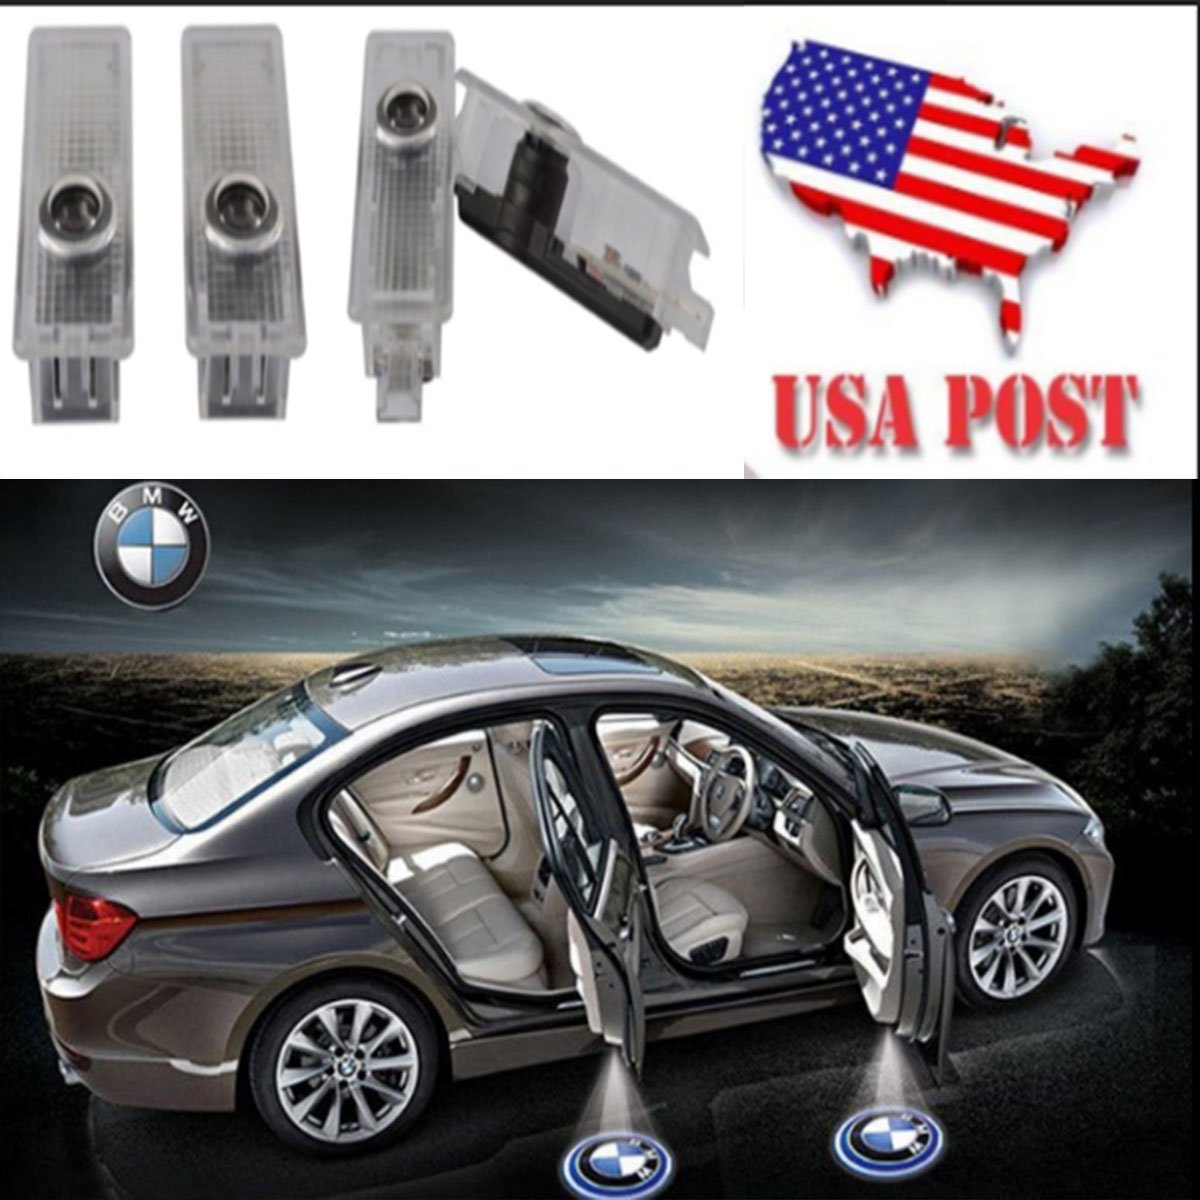 CNAutoLicht 4X Welcome Light LED Door Step Courtesy Light For BMW 1-Series E82 E87 F20 3-Series E90 E91 F30 5-Series E60 E61 F10 Laser Shadow Logo Projector Lamp